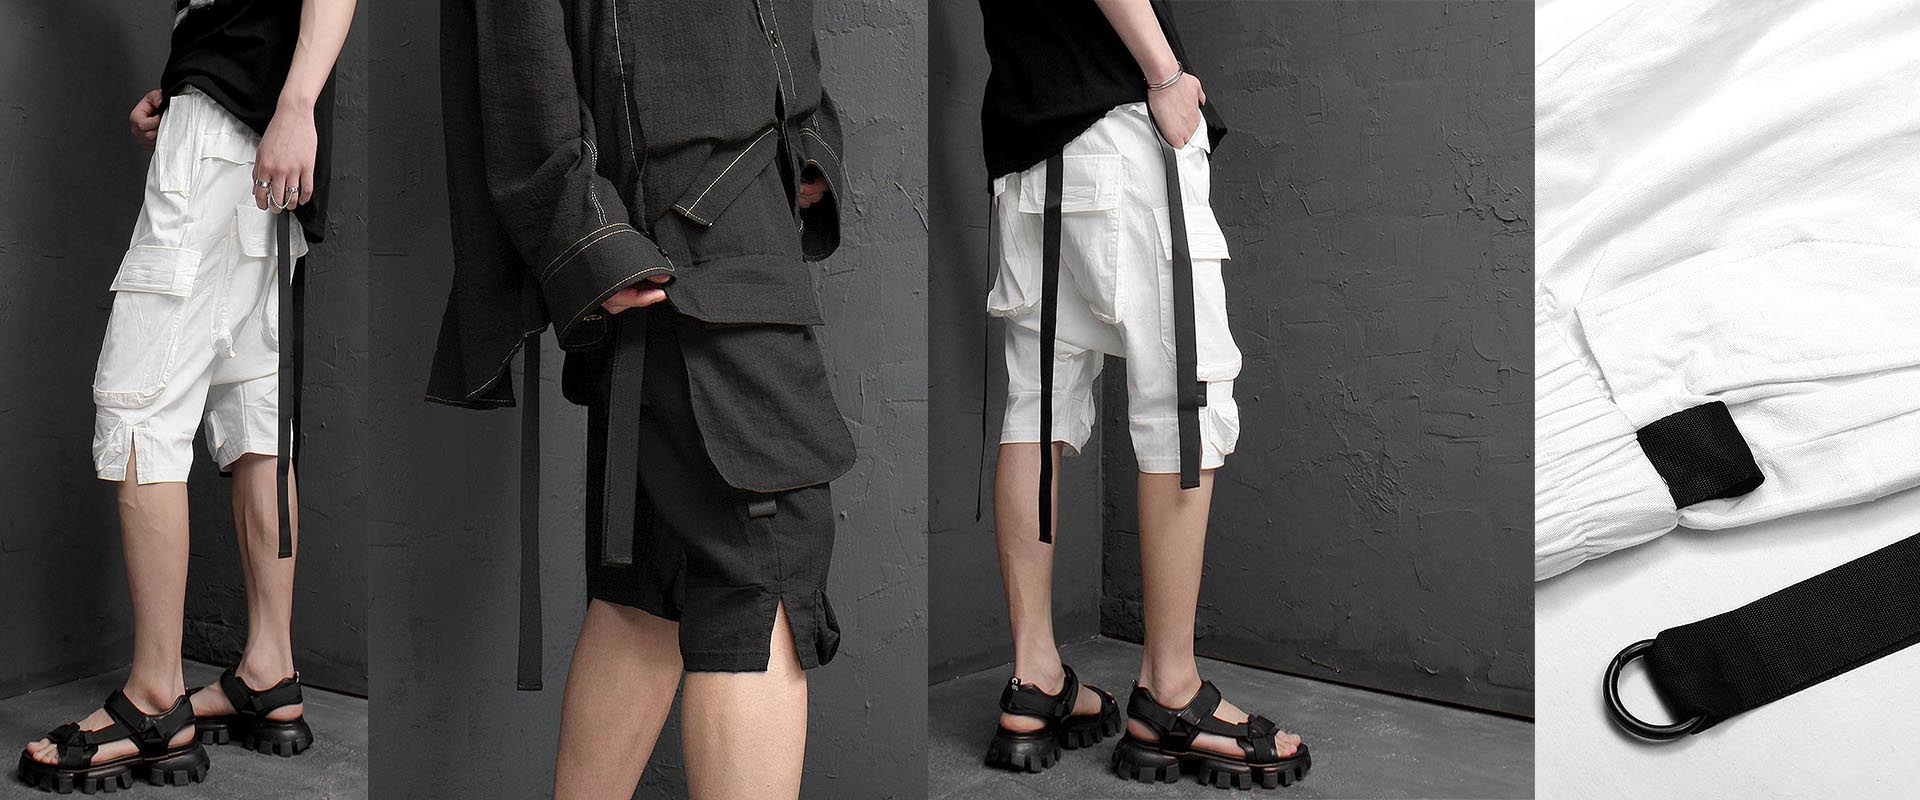 Cargo Pocket Strap 3/4 Pants 1248